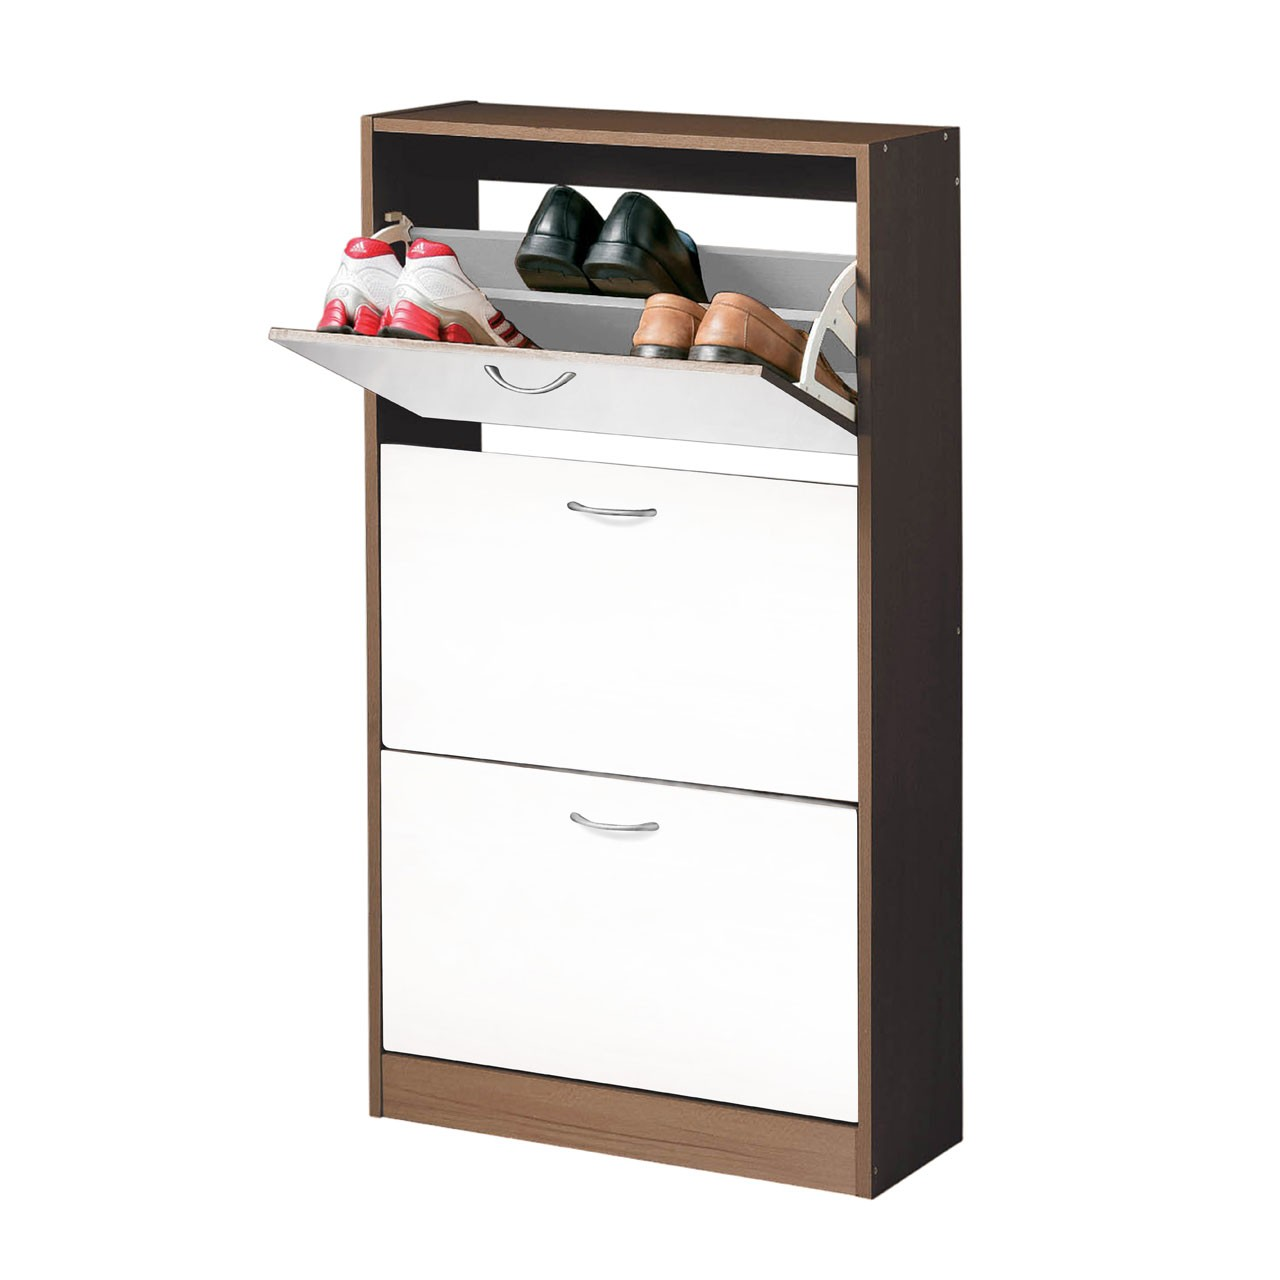 Prime Furnishing 3 Drawer Shoe Cupboard, Wood - Walnut/White